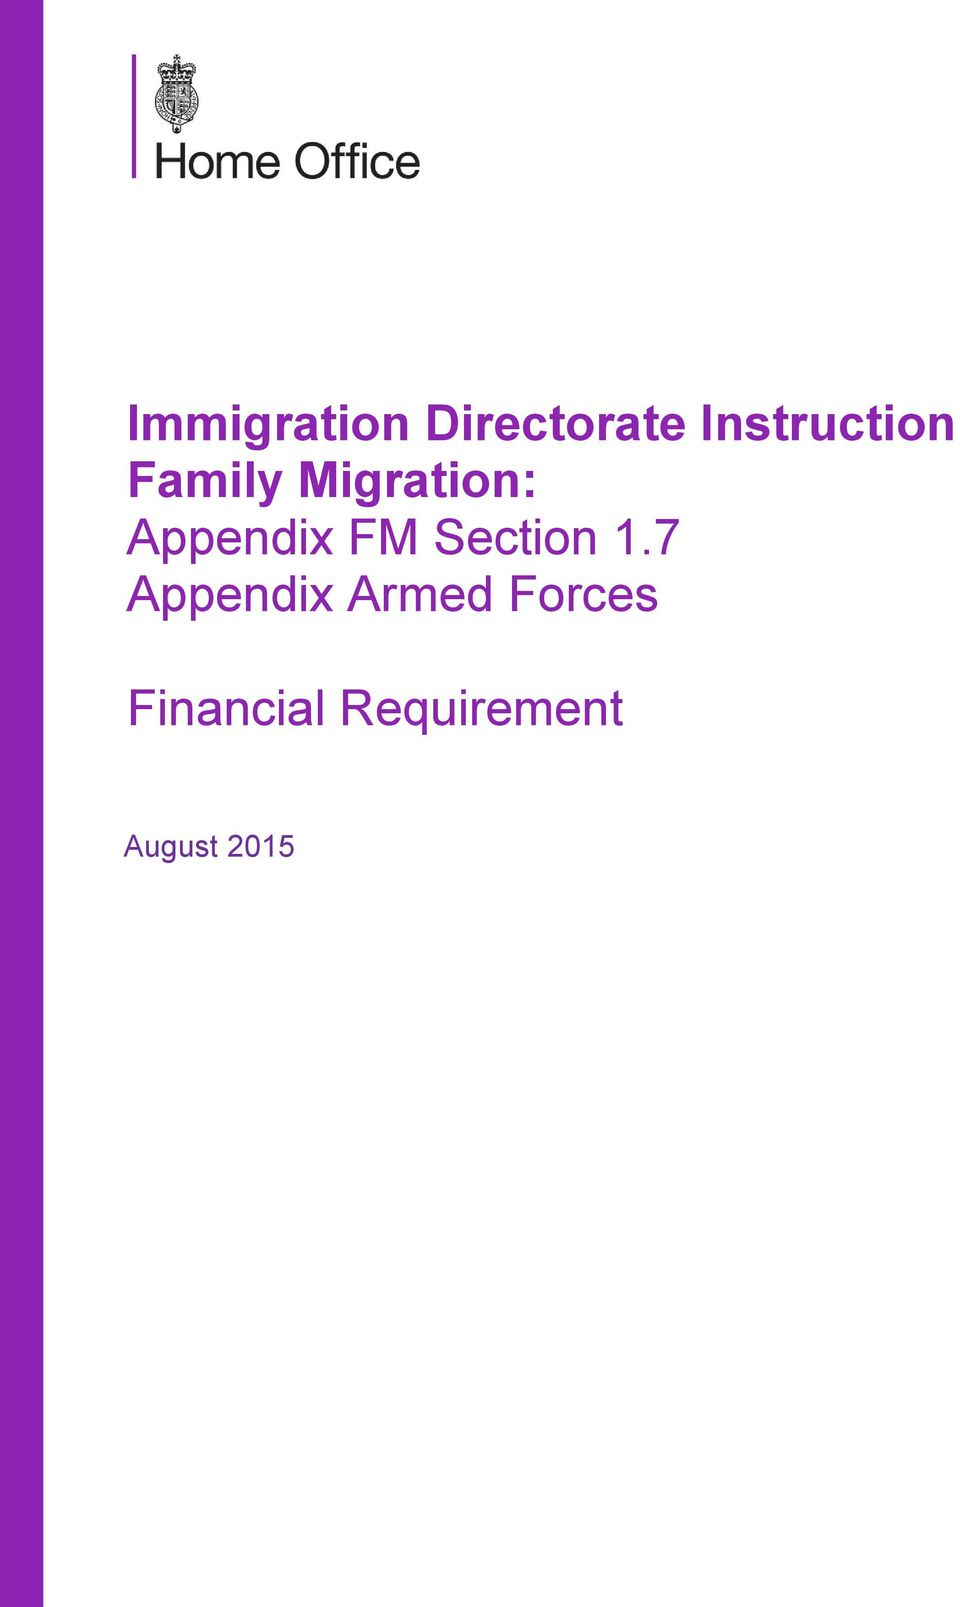 immigration directorate instruction fm 1.7